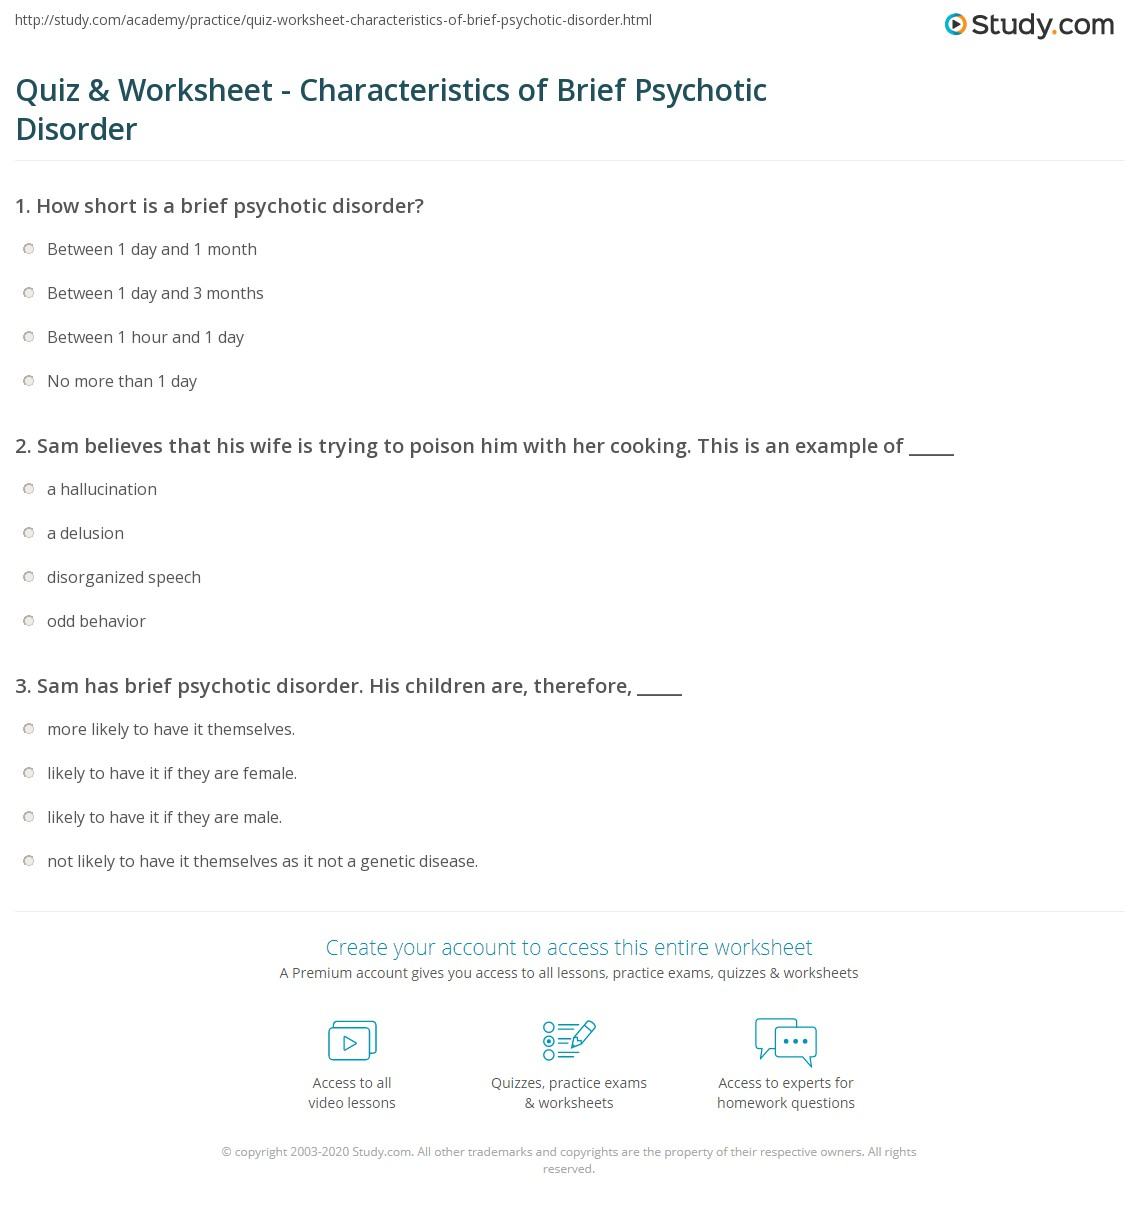 Quiz Worksheet Characteristics Of Brief Psychotic Disorder